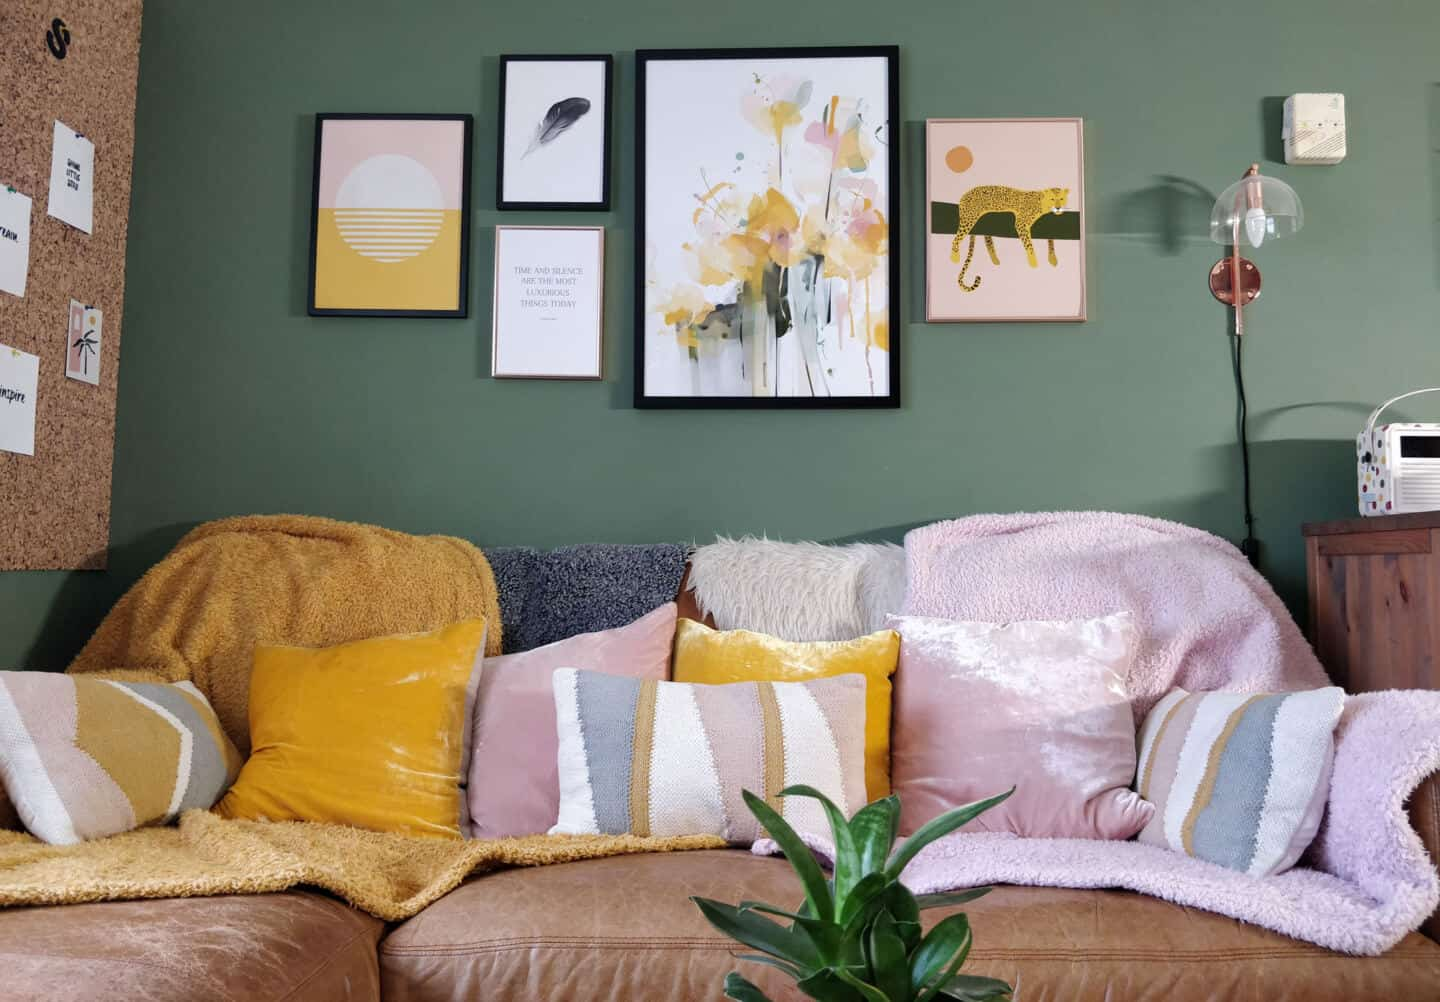 Pink & yellow artwork inspired by Travel from Greenlili hung on a moss green living room wall above a leather sofa covered in pink & yellow throws and cushions